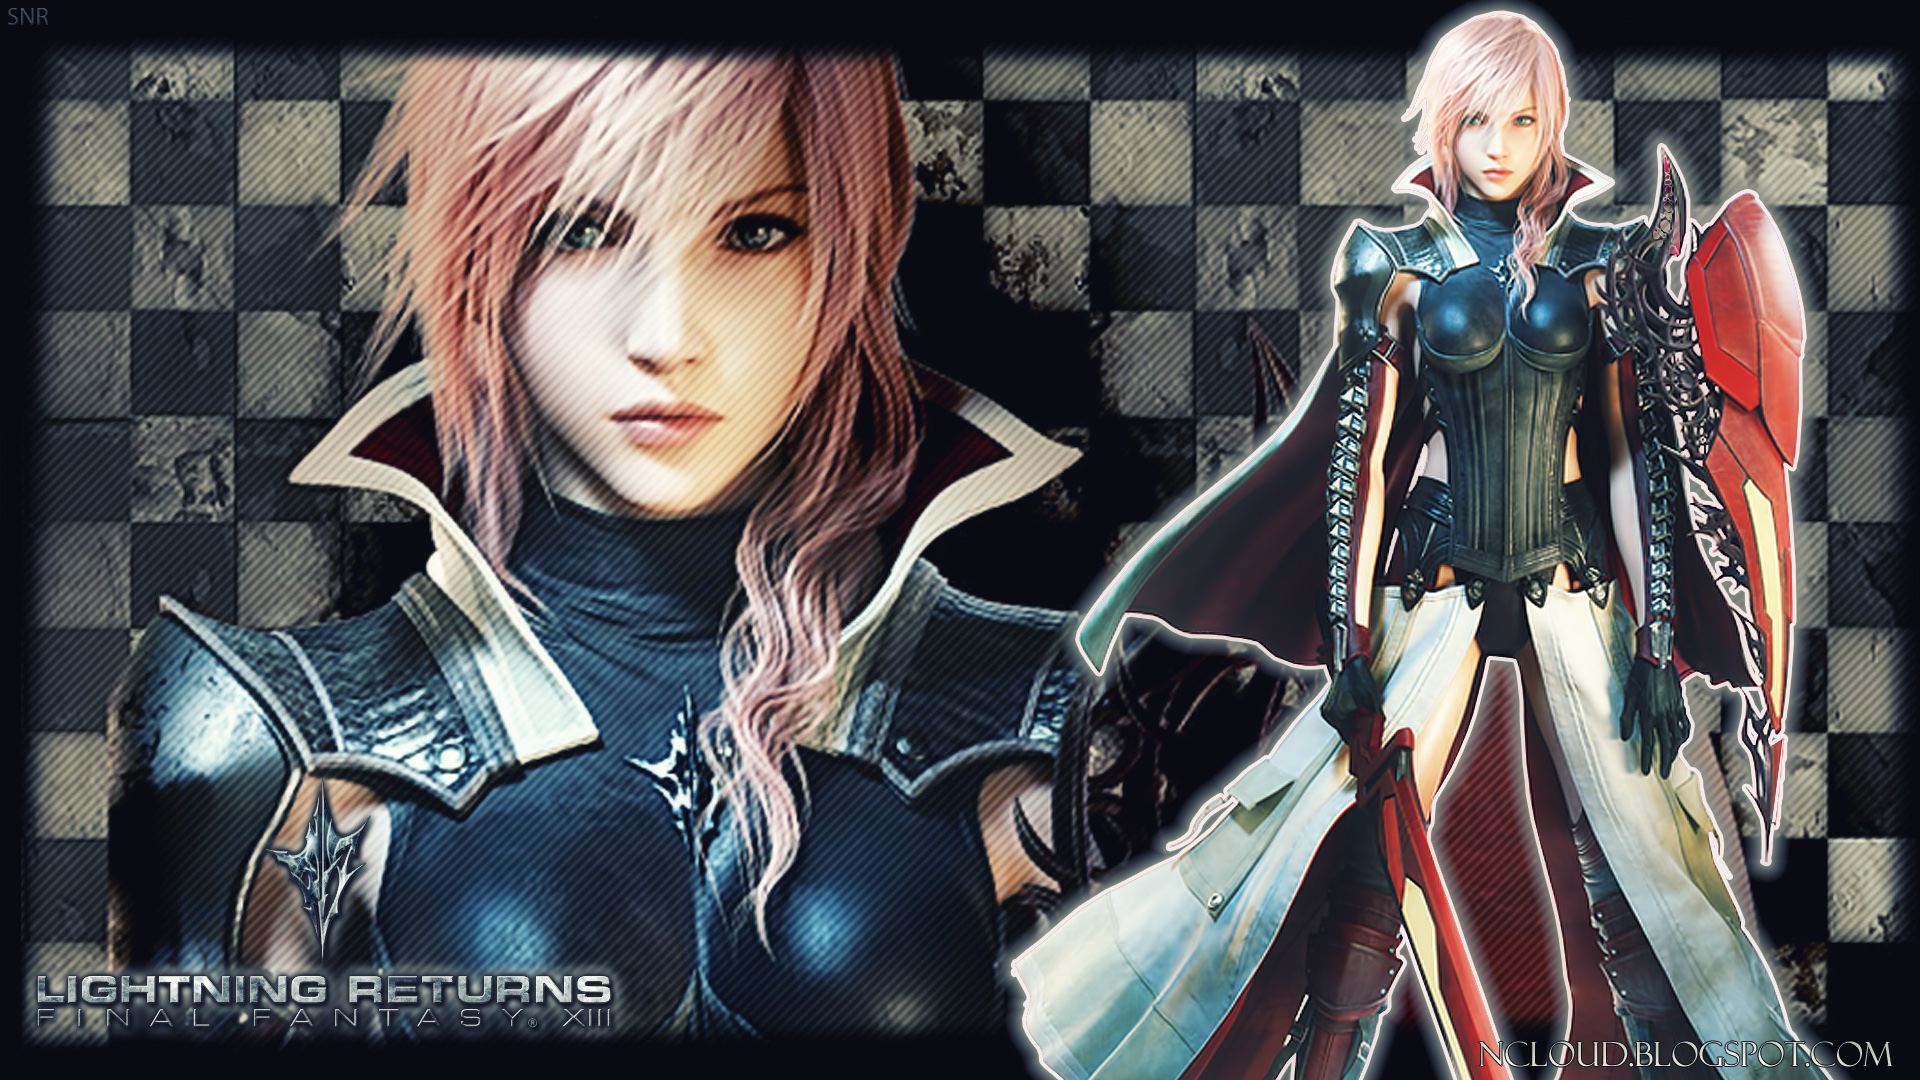 lightning returns final fantasy xiii images lightning returns